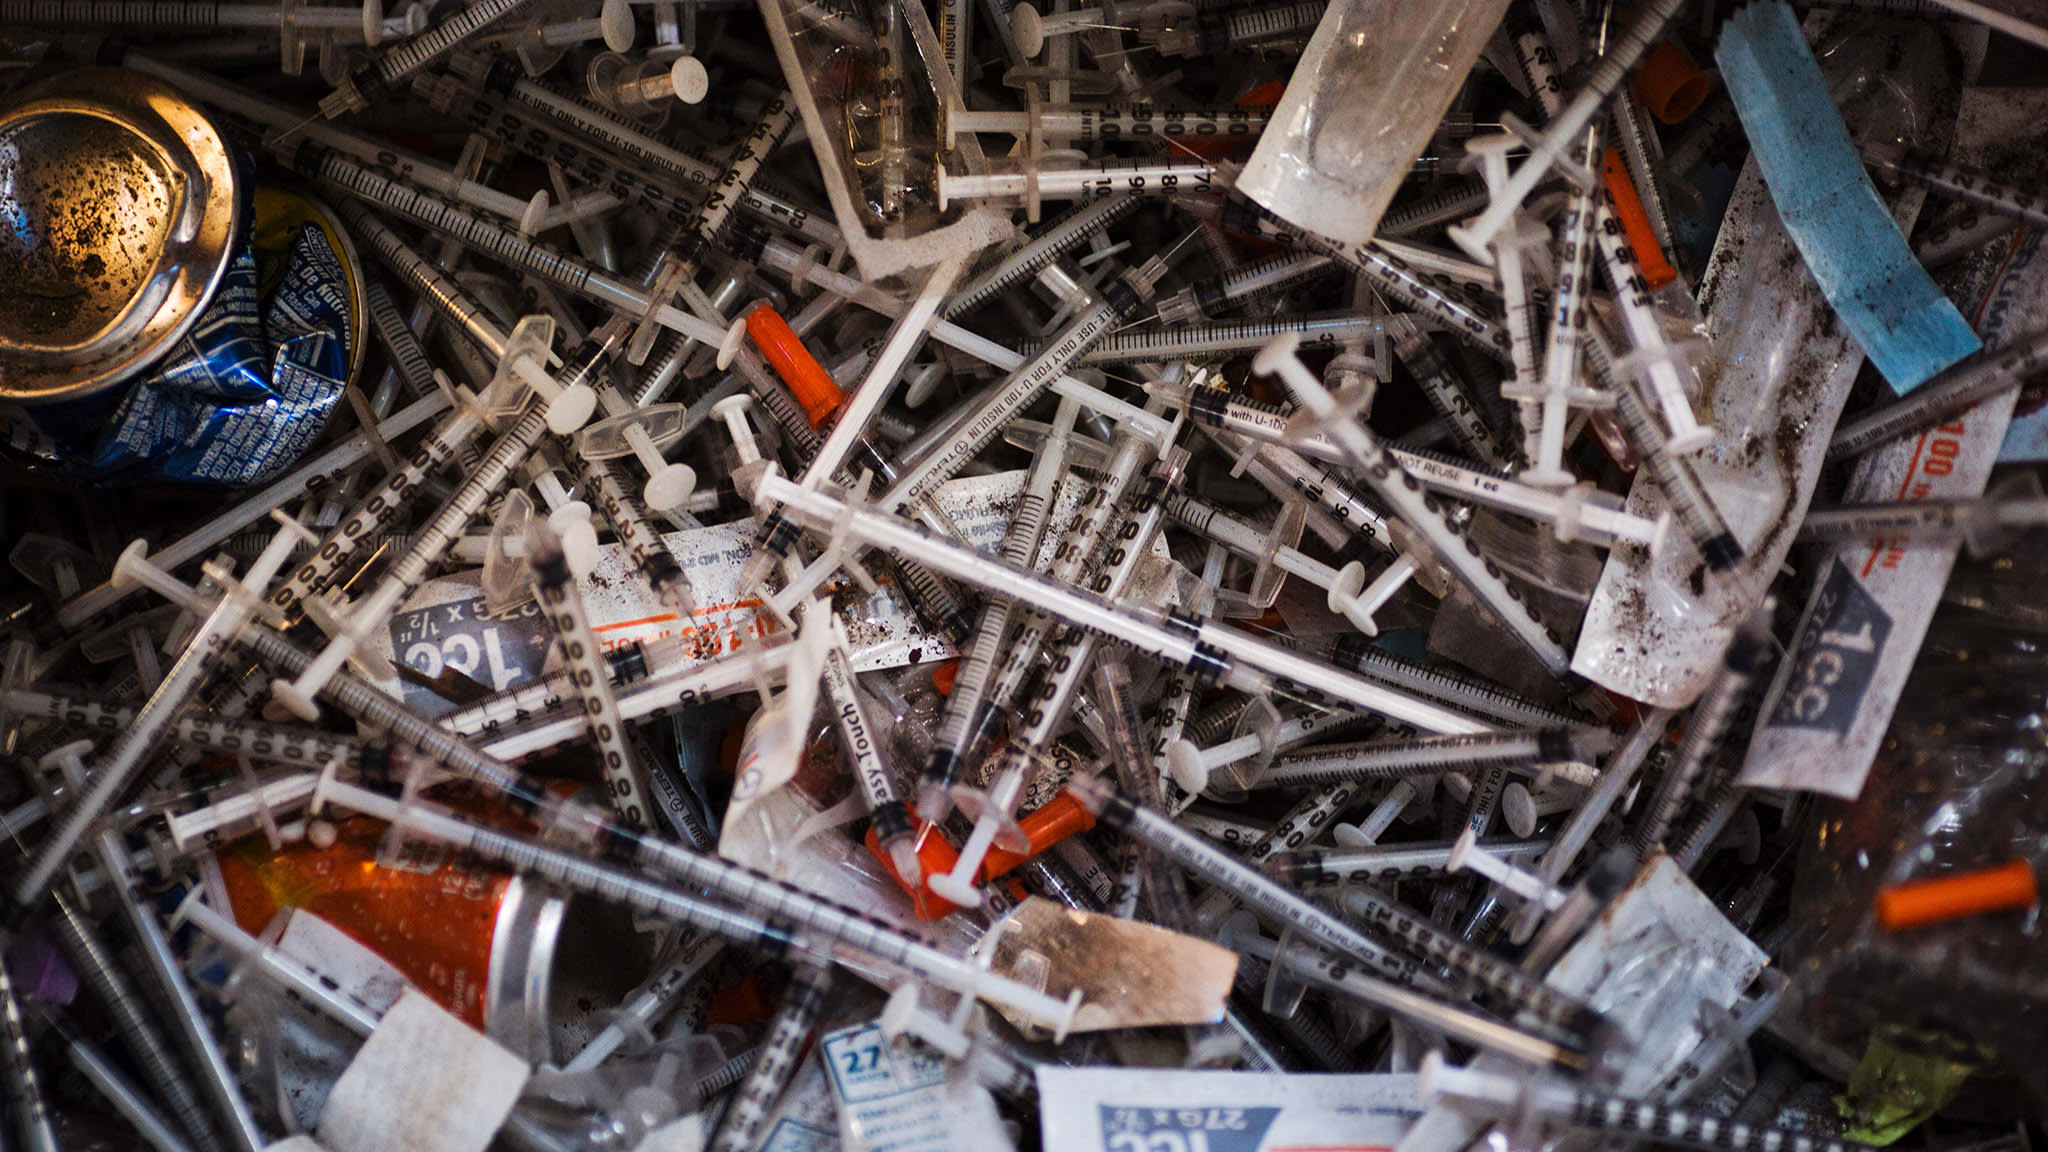 Discarded needles are seen at a heroin encampment in the Kensington neighborhood of Philadelphia, Pennsylvania, on April 7, 2017.In North Philadelphia, railroad gulch as it is knowen, is ground zero in Philadelphia?s opioid epidemic. Known by locals as El Campanento, the open air drug market and heroin encampment is built with the discarded materials from the gulch and populated by addicts seeking a hit of heroin to keep their dope sick, or withdrawal symptoms, at bay. In one area, near the 2nd Avenue overpass, empty syringe wrappers blanket the refuse like grass the used needles they once contained poking through like thistles. / AFP PHOTO / DOMINICK REUTER        (Photo credit should read DOMINICK REUTER/AFP/Getty Images)